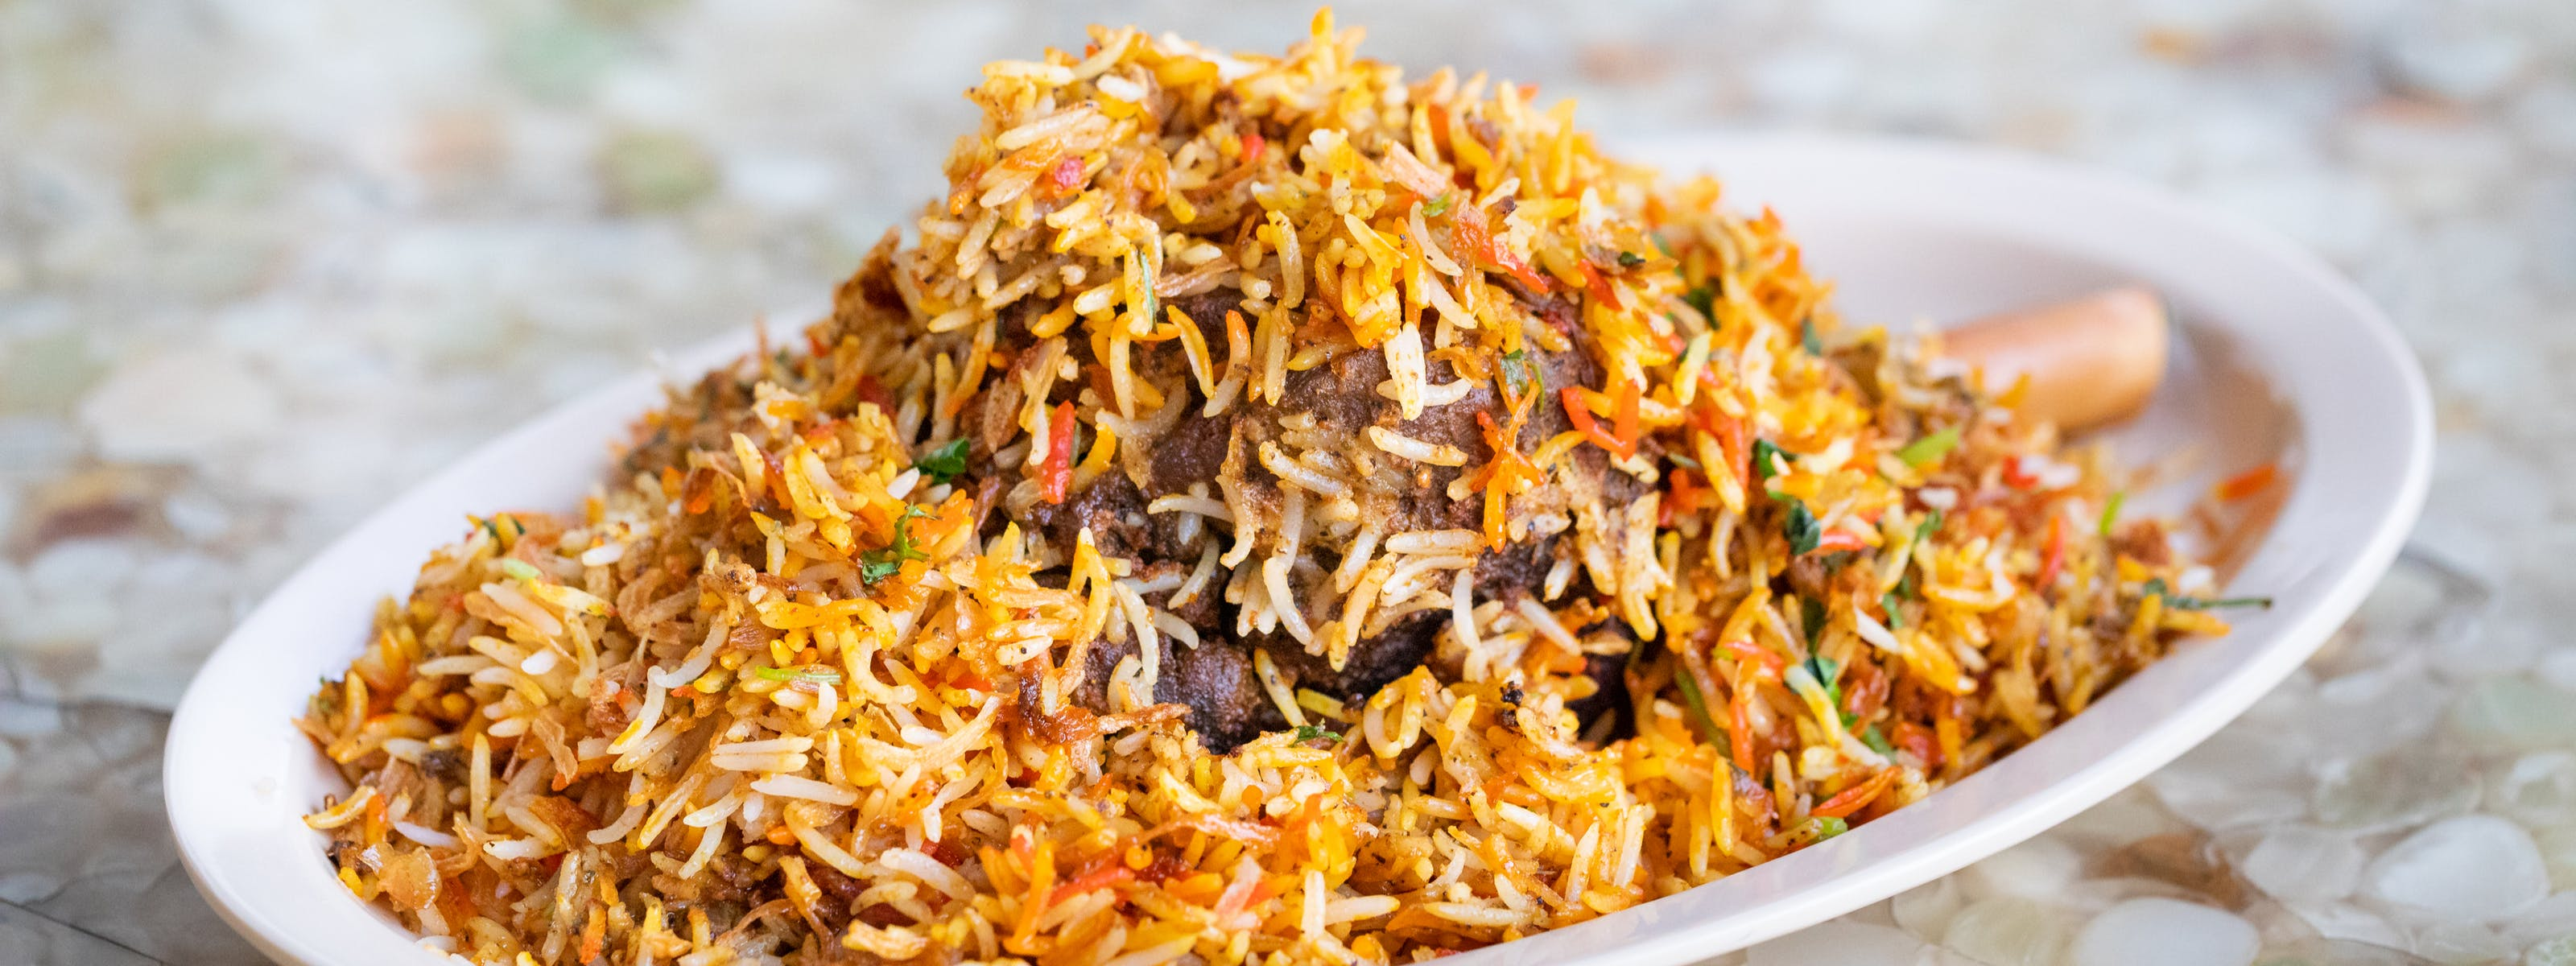 Where To Eat Biryani In LA - Los Angeles - The Infatuation